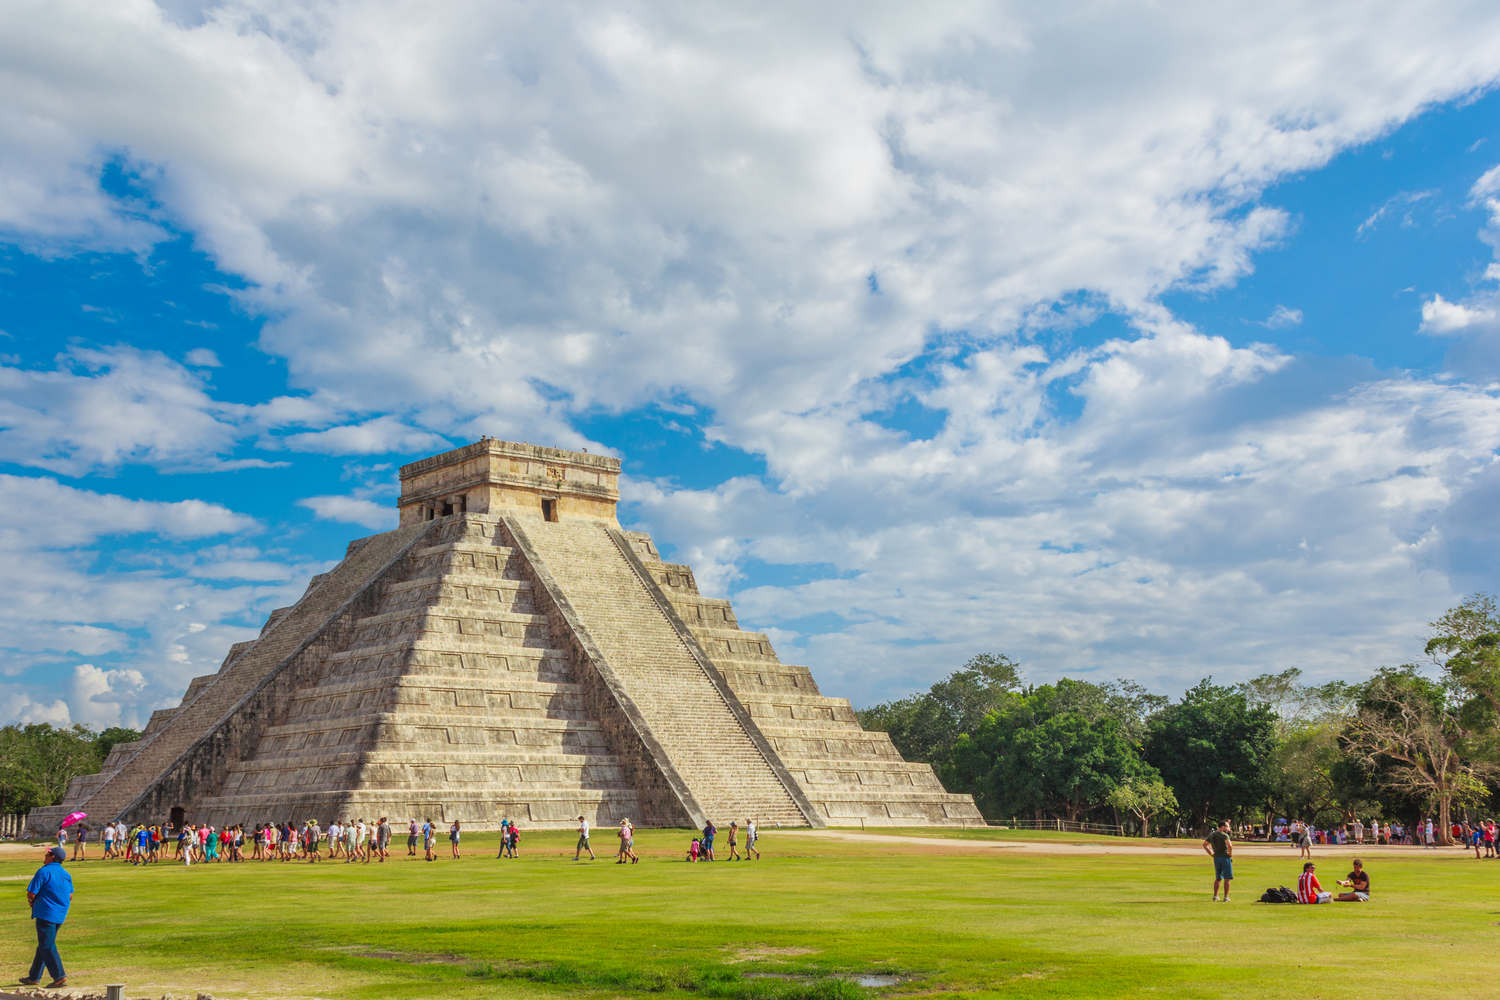 mexico-chichen-itza-archaeological-site-el-castillo-pyramid